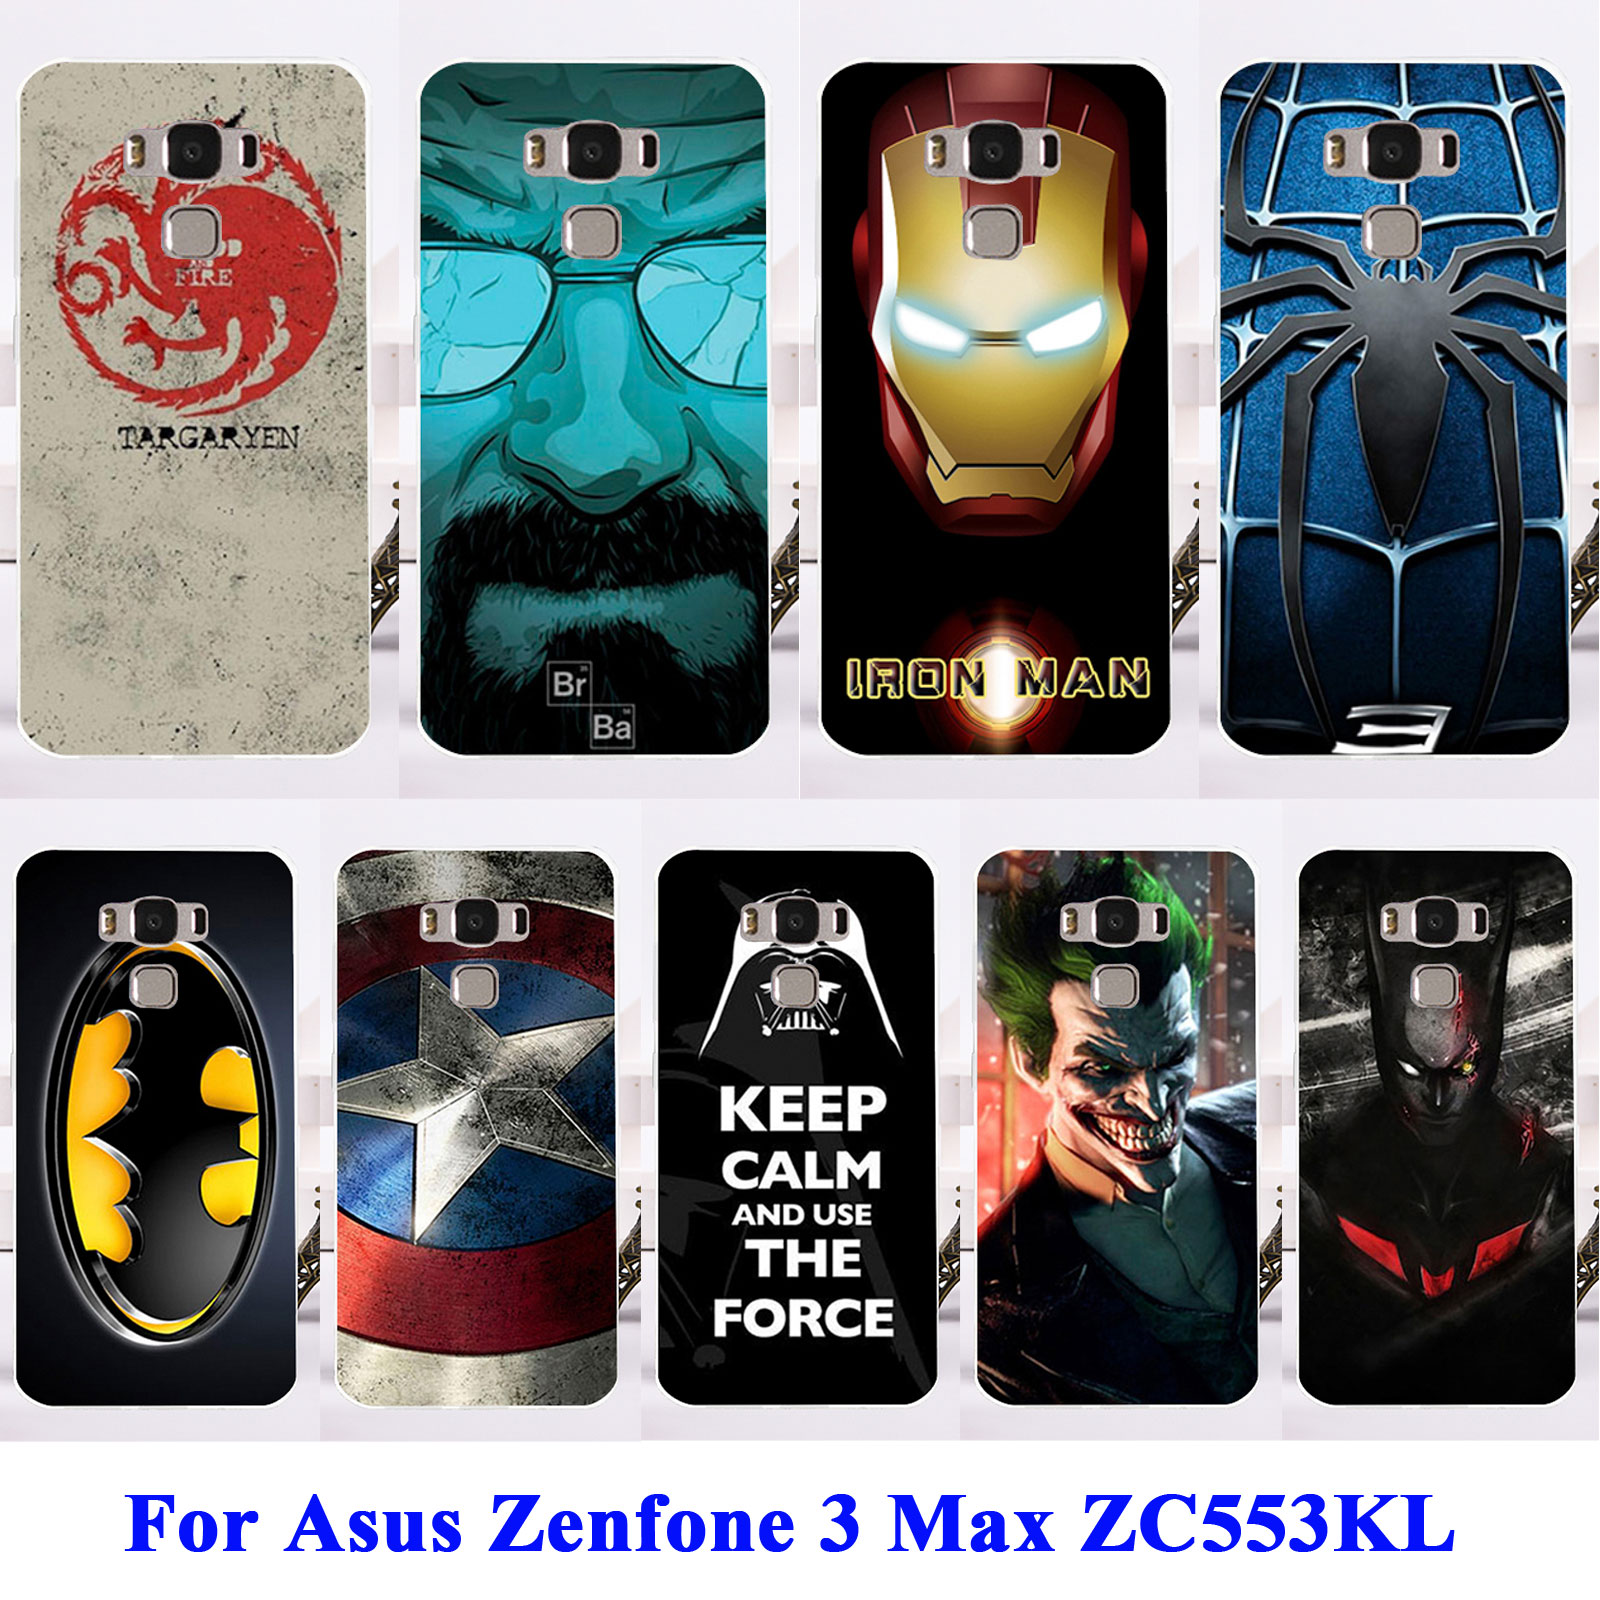 online store 3f07e 8e727 US $1.56 21% OFF|AKABEILA Soft TPU Phone Cases For Asus Zenfone 3 Max  ZC553KL Zenfone3 Max 5.5 inch Captain American Bags Cover Bumper-in Fitted  Cases ...